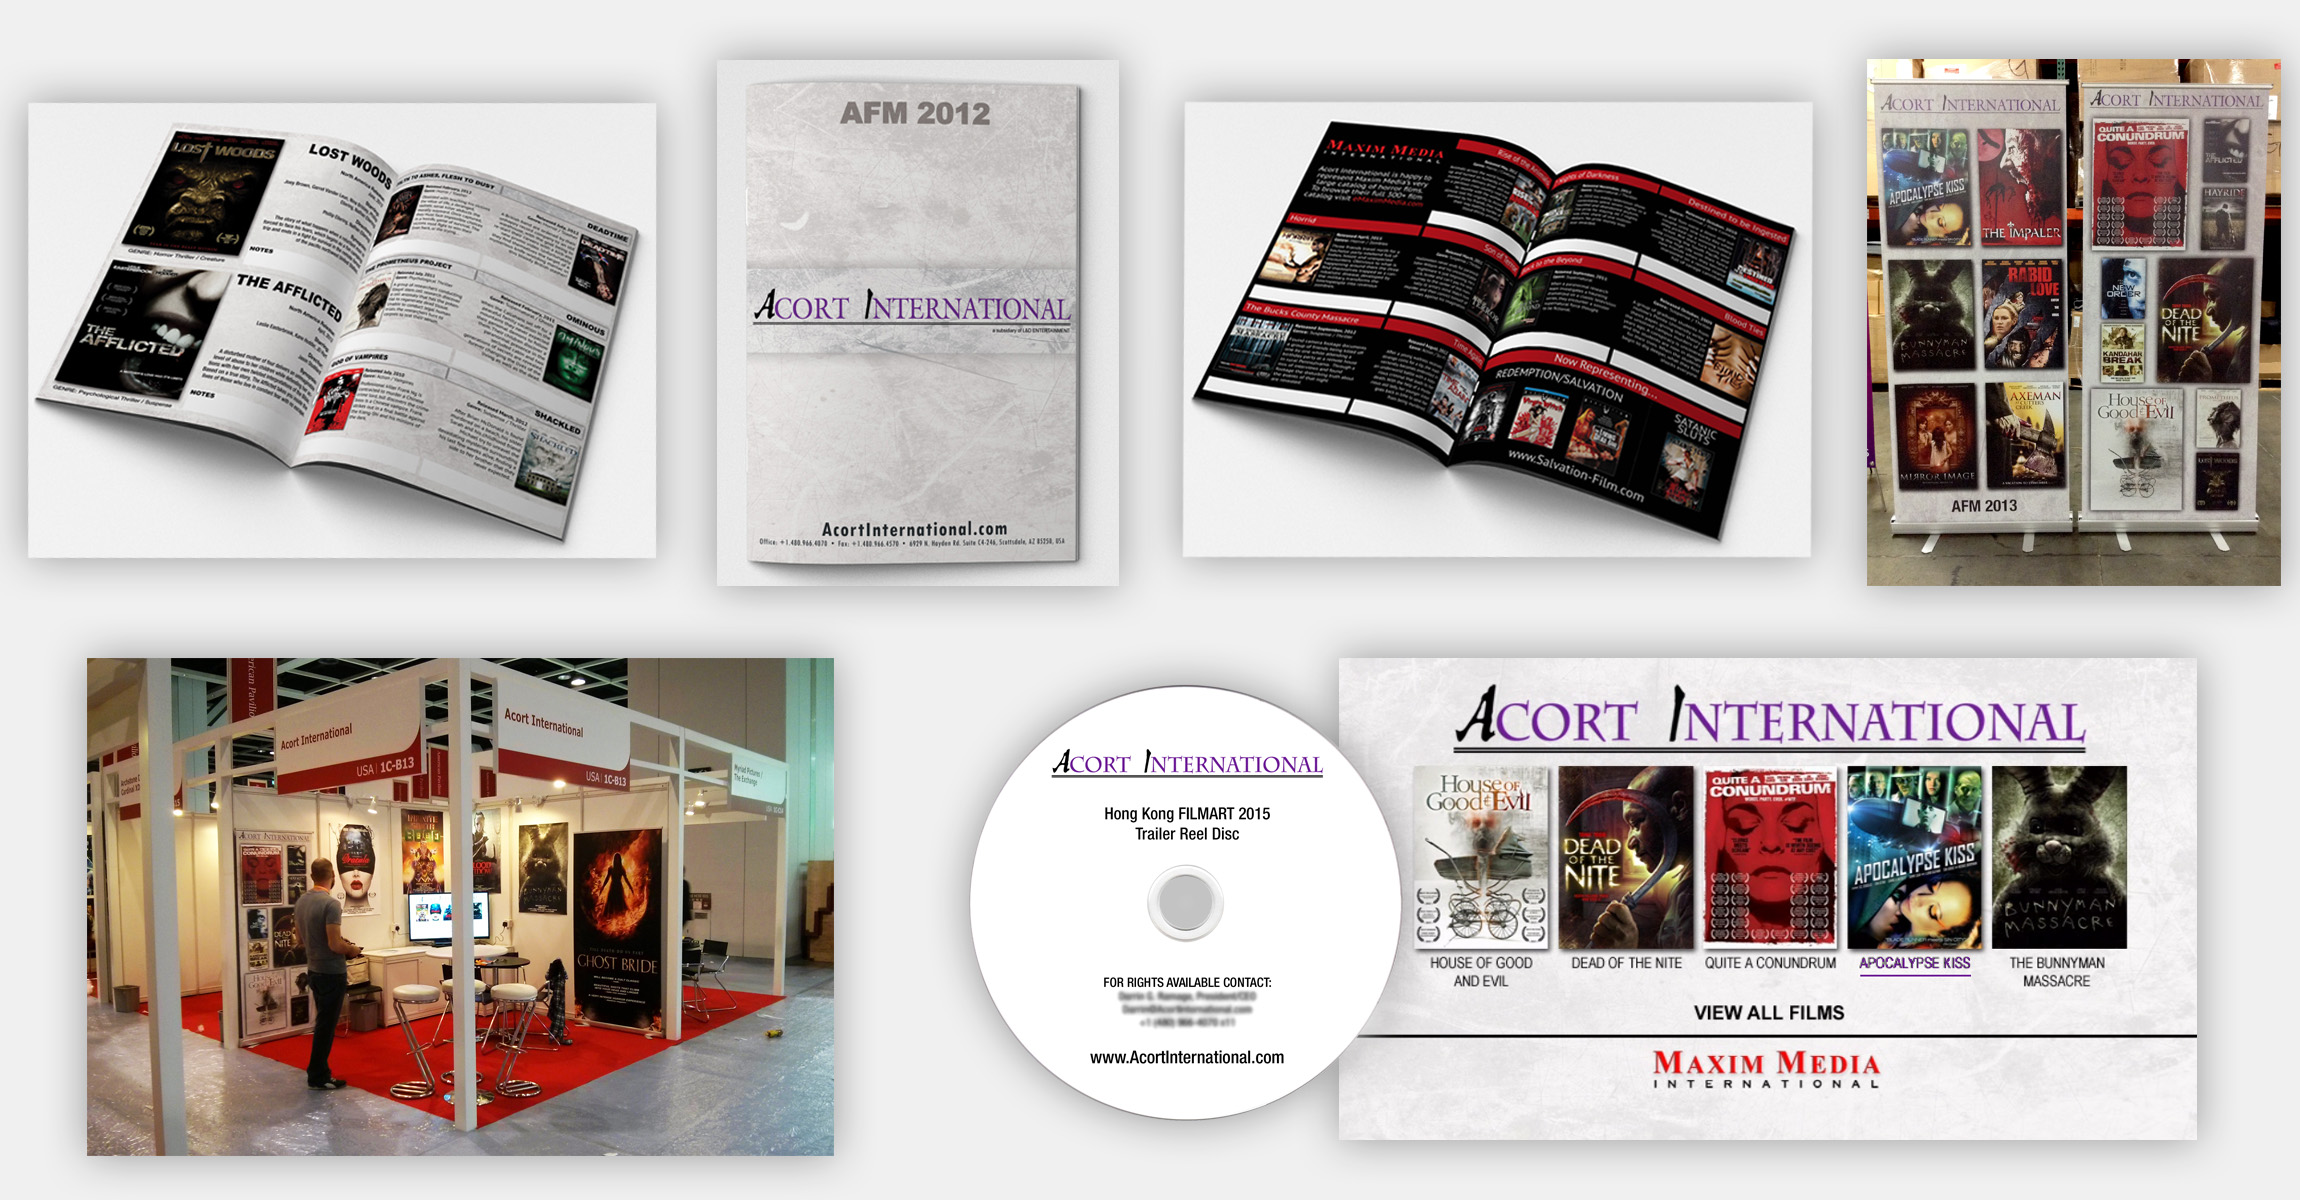 Acort International Film Market Materials